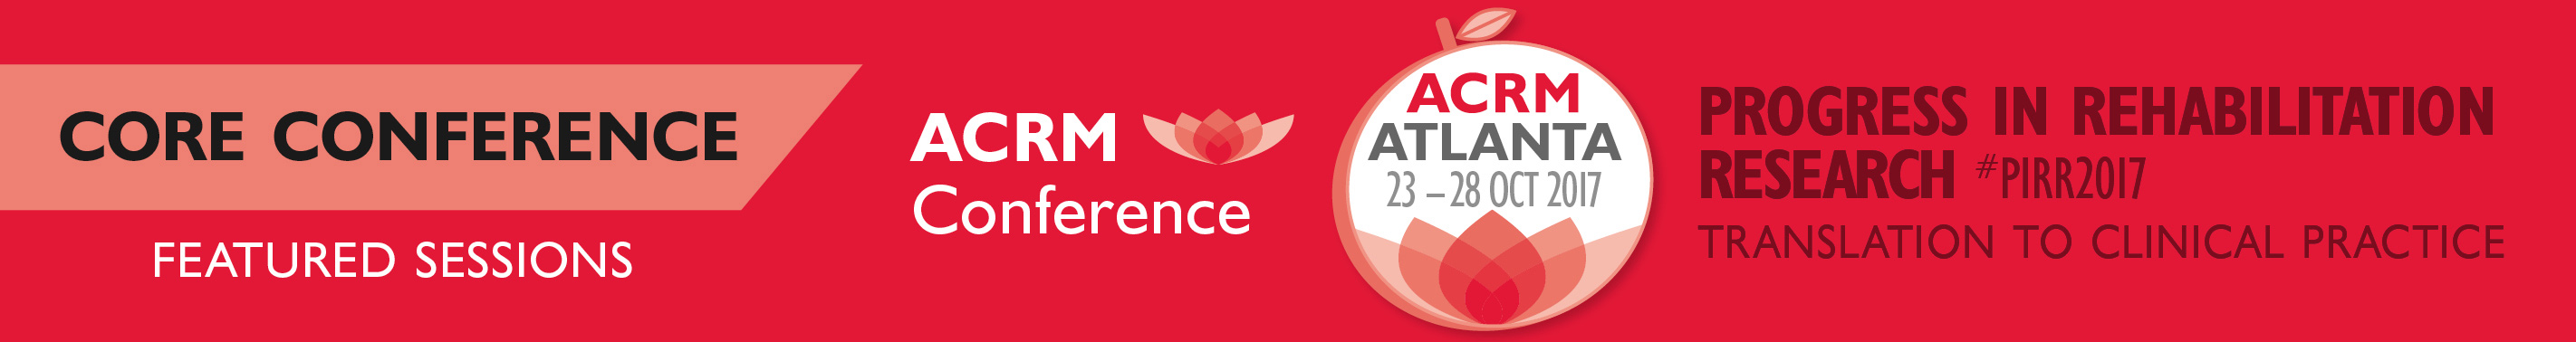 ACRM Conference Featured Sessions